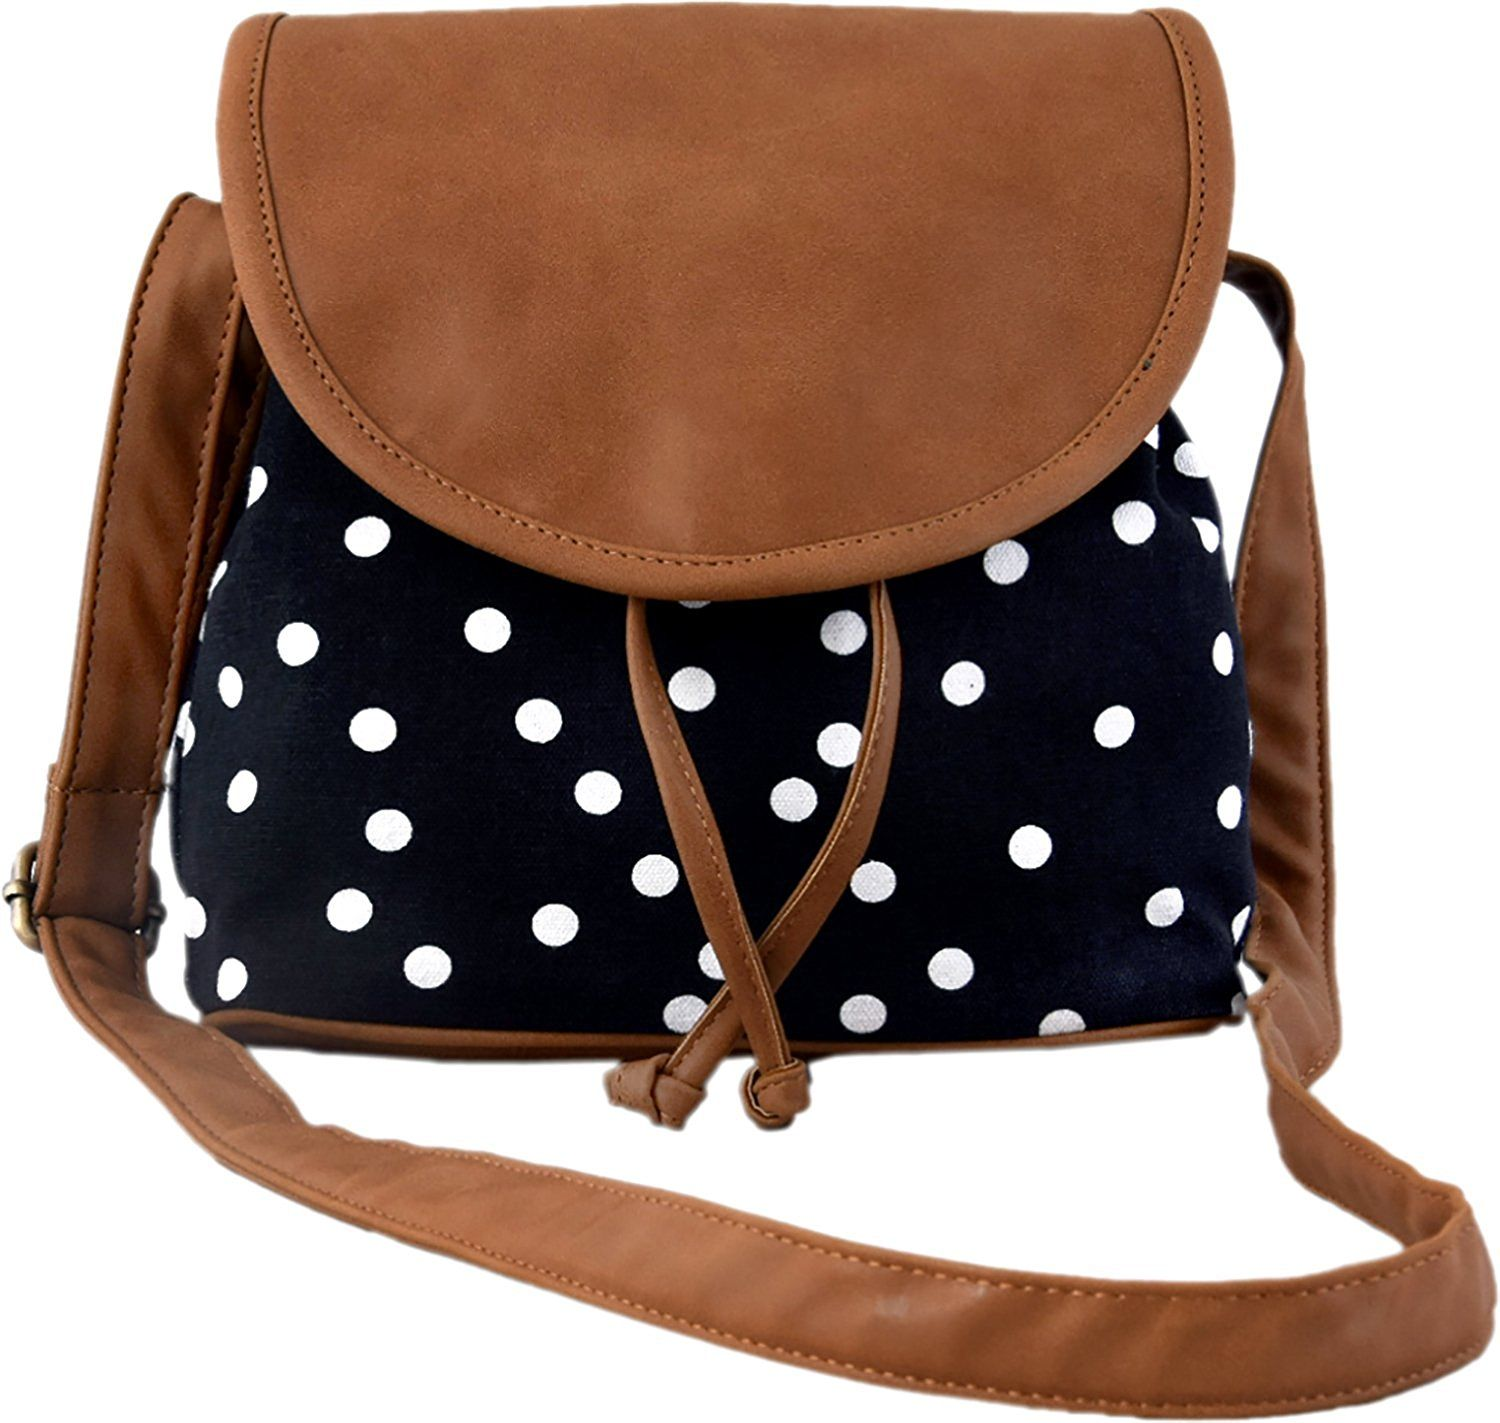 Watch - College stylish bags online india video